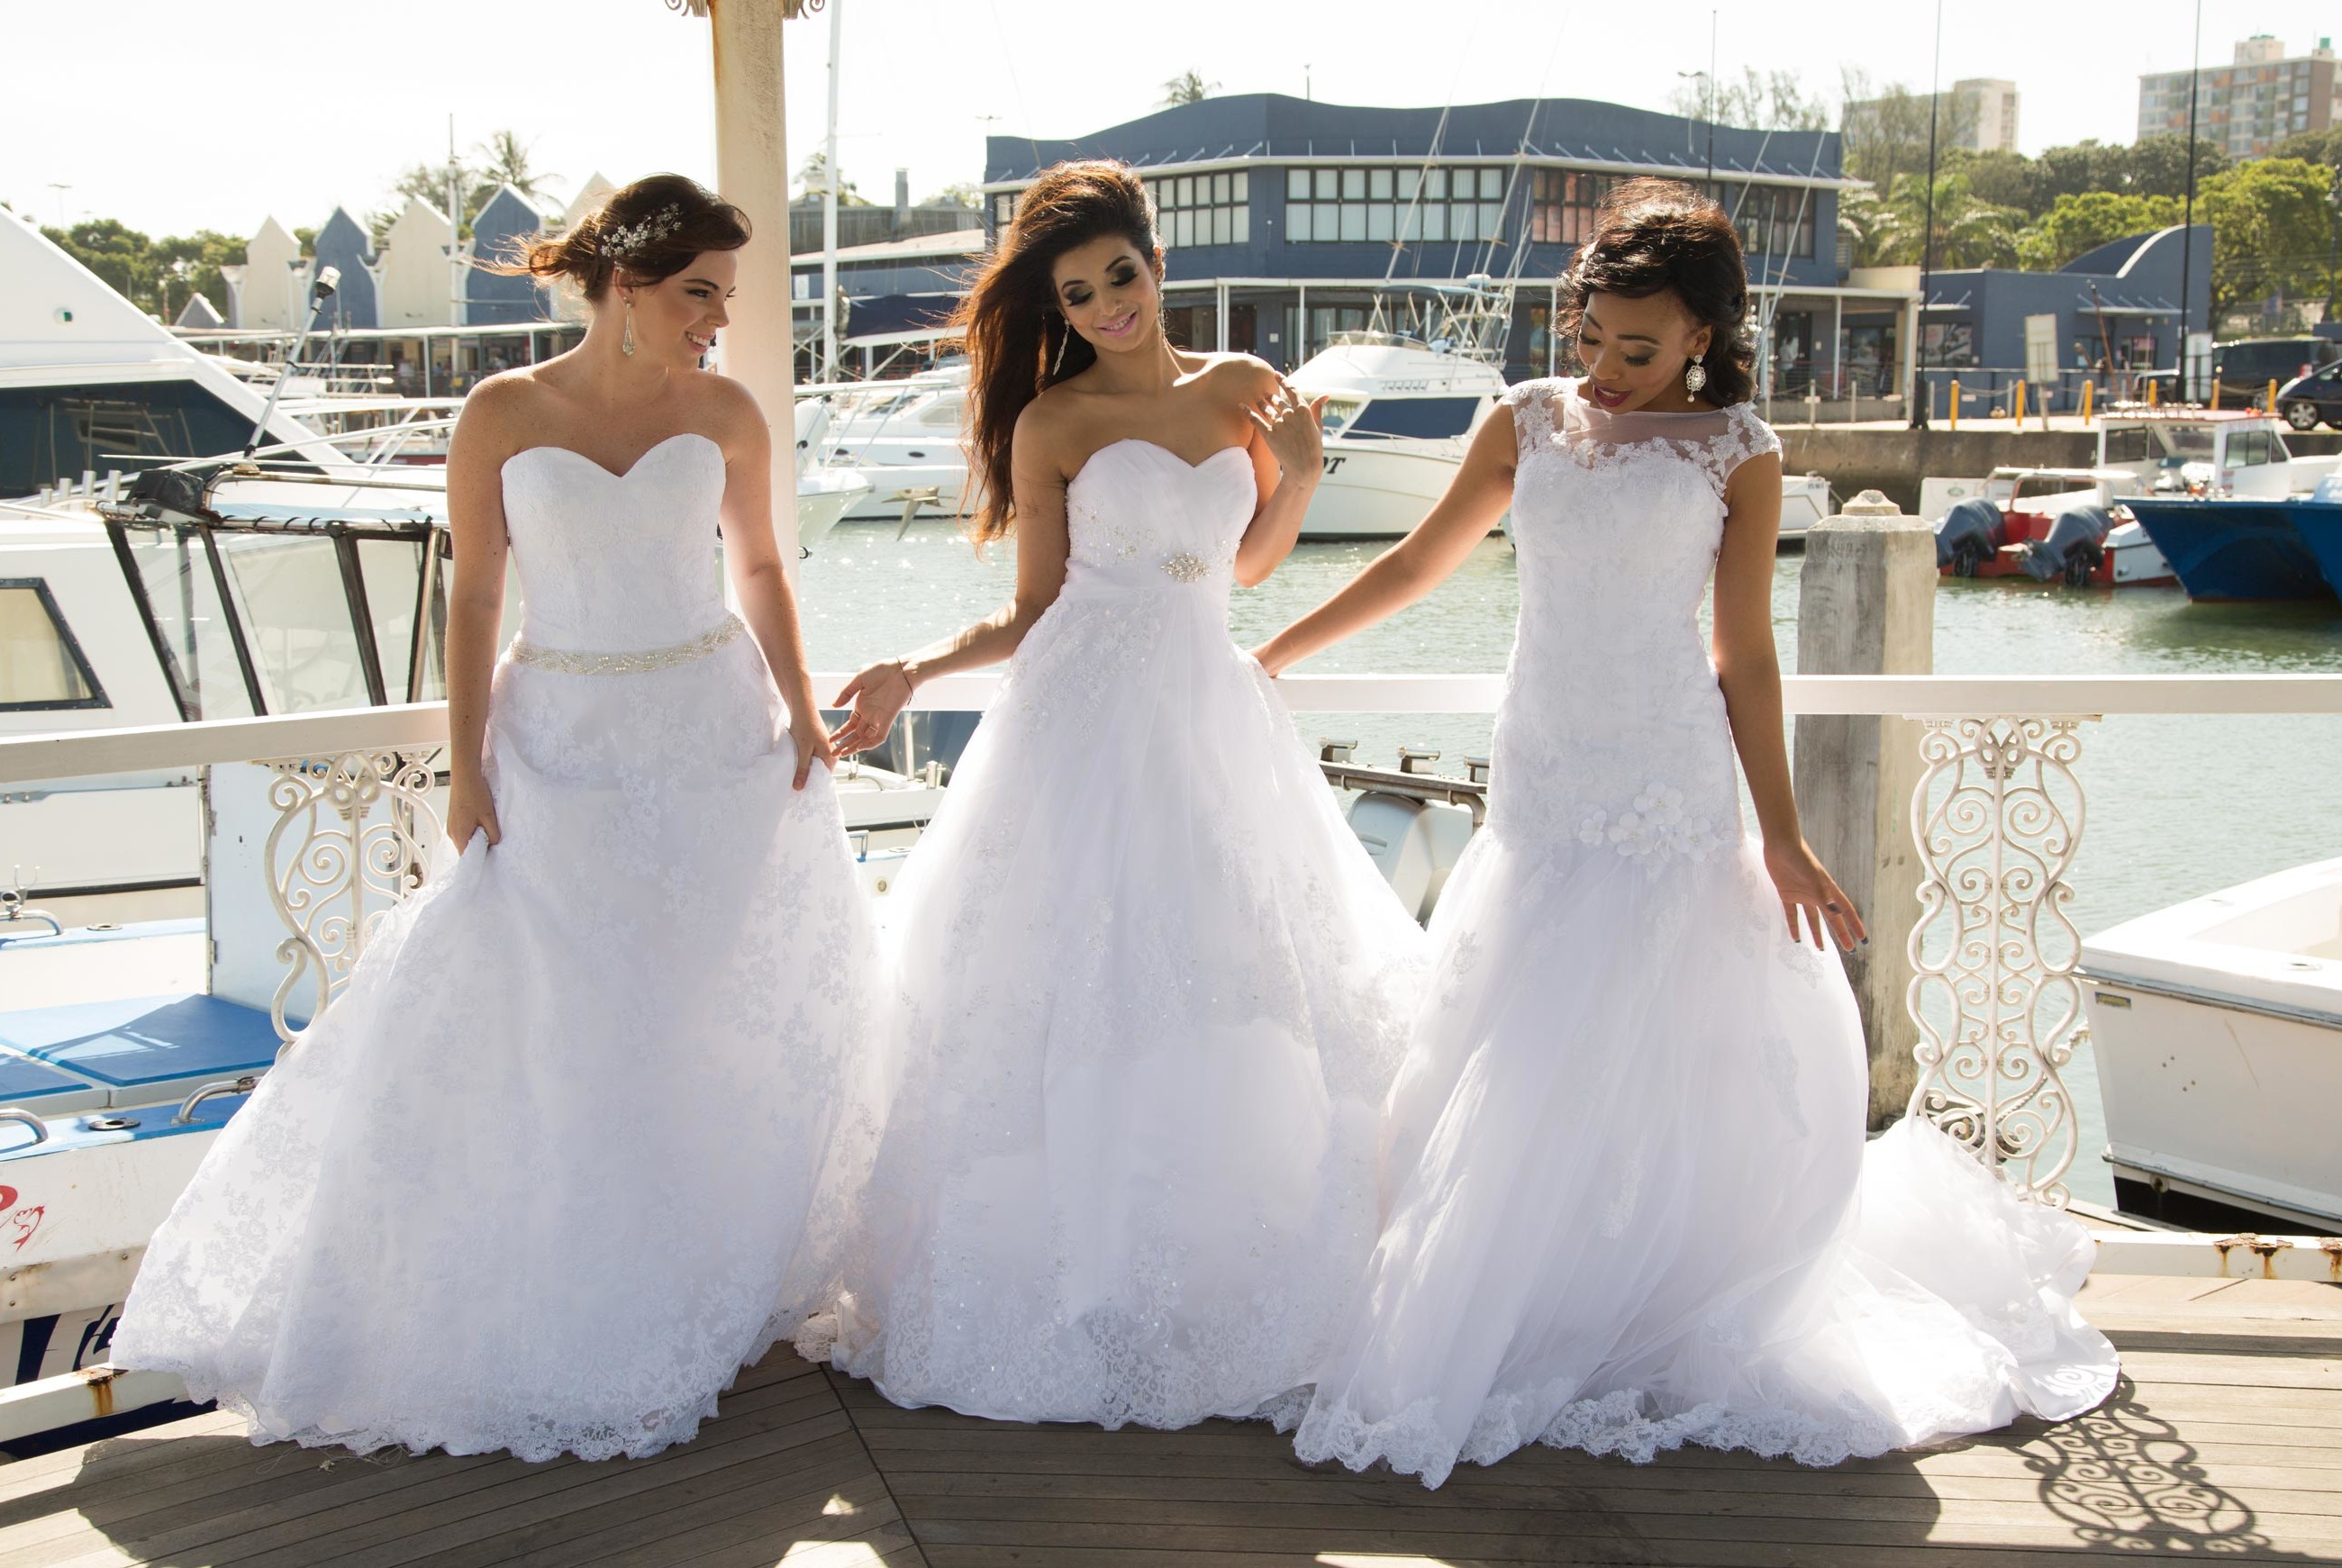 Jasmins Bridal - Your Wedding Planner Guide